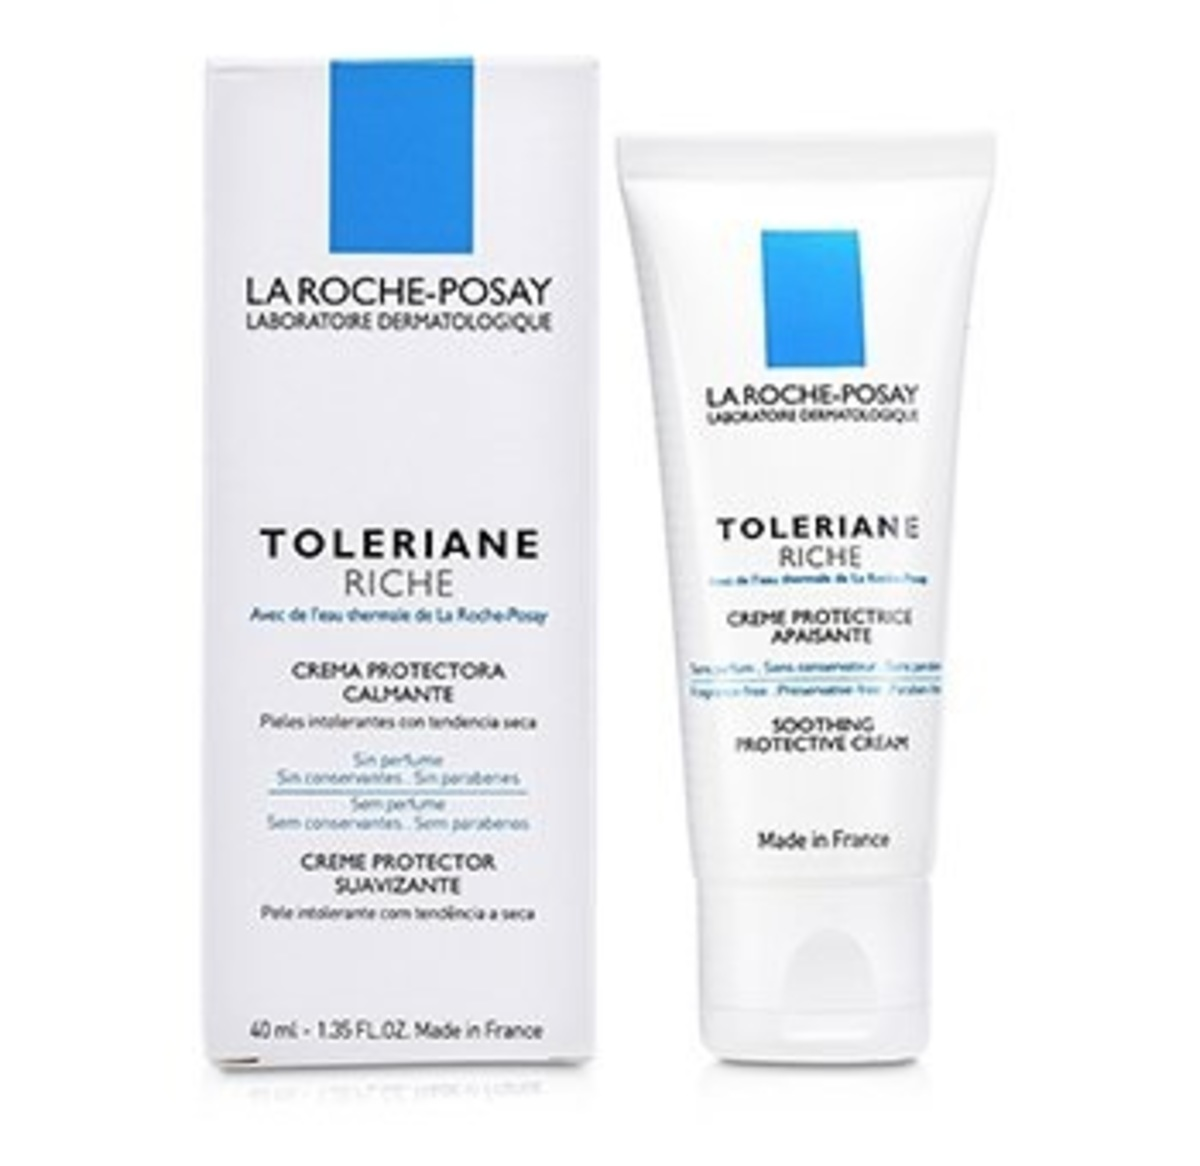 TOLERIANE RICHE MOISTURIZER FOR VERY DRY SKIN 40ml